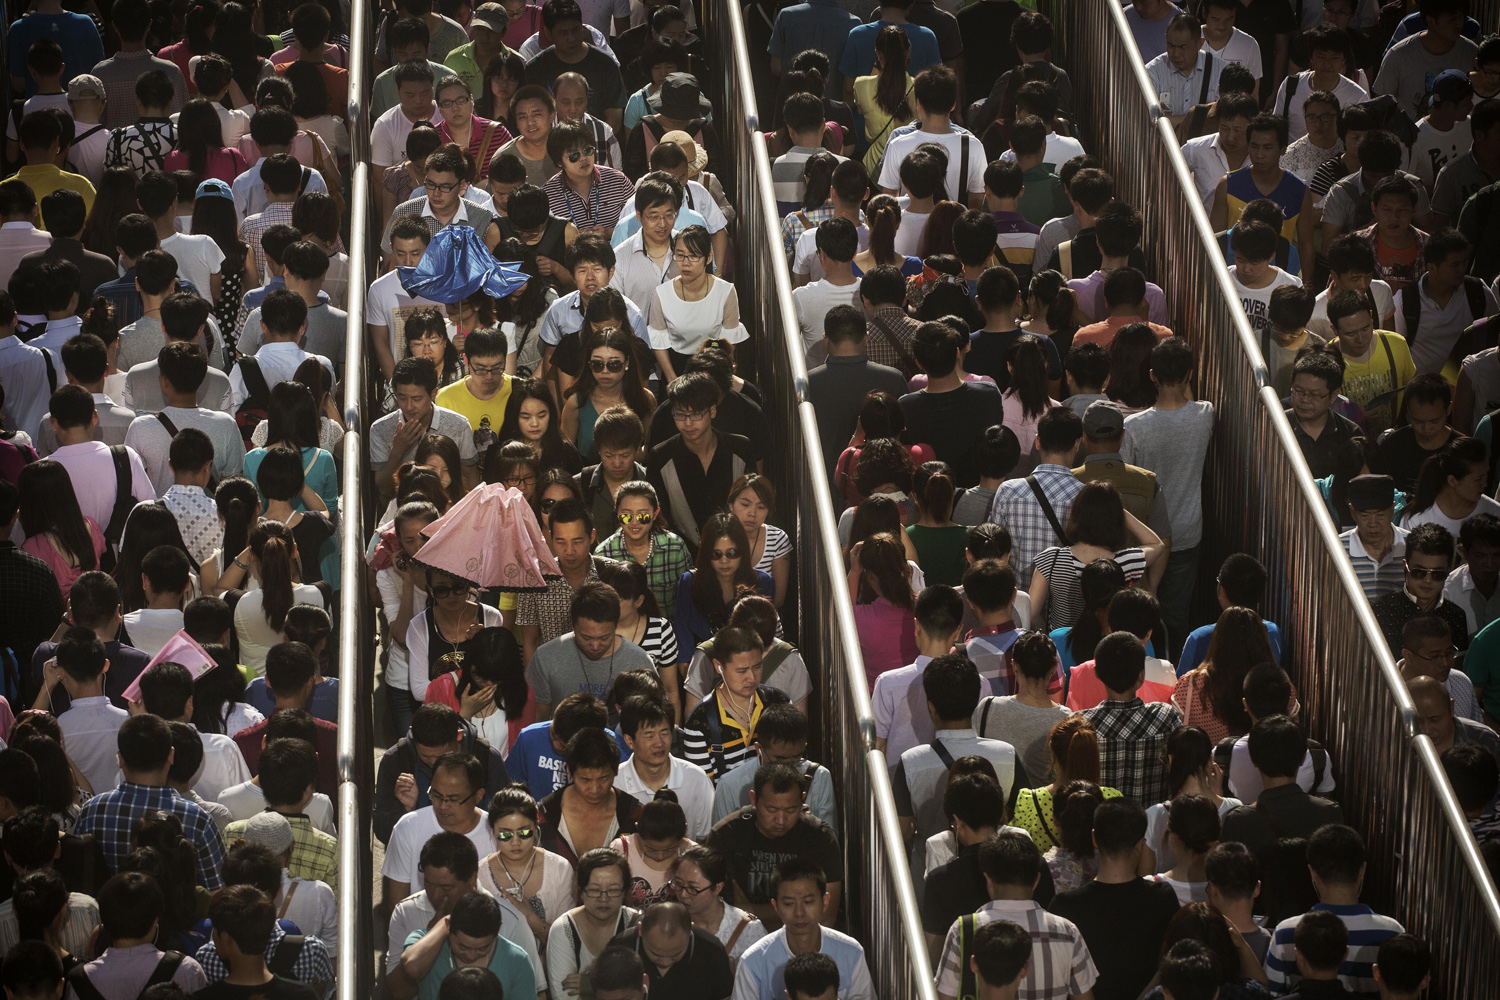 May 29, 2014. Chinese commuters line-up at a security check to enter a subway station in Beijing, China.